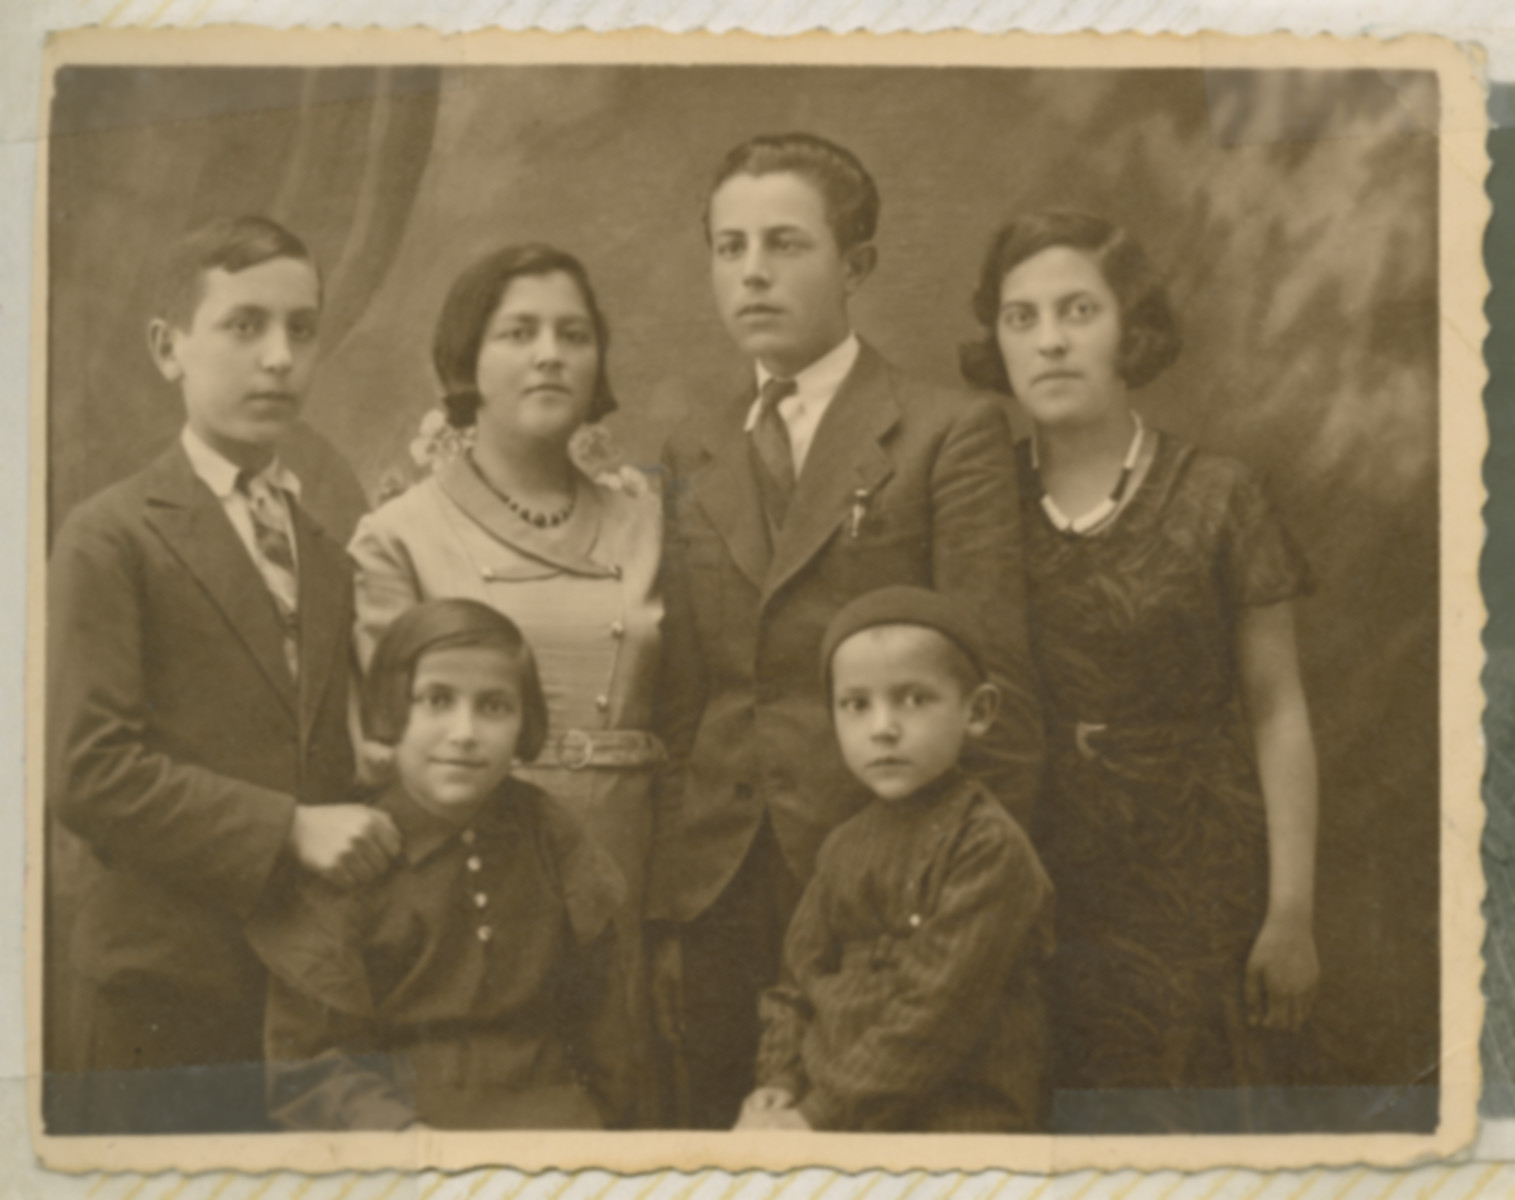 Prewar family photo of the Reichtental family.  Moishe (Marian) Reichental is standing second from the right. Also pictured are his siblings Max, Rafael, Pesa, Rachela and Mila. Pesa and Rafael are the youngest at the forefront.  Rachela is flanked by Max and Marian.